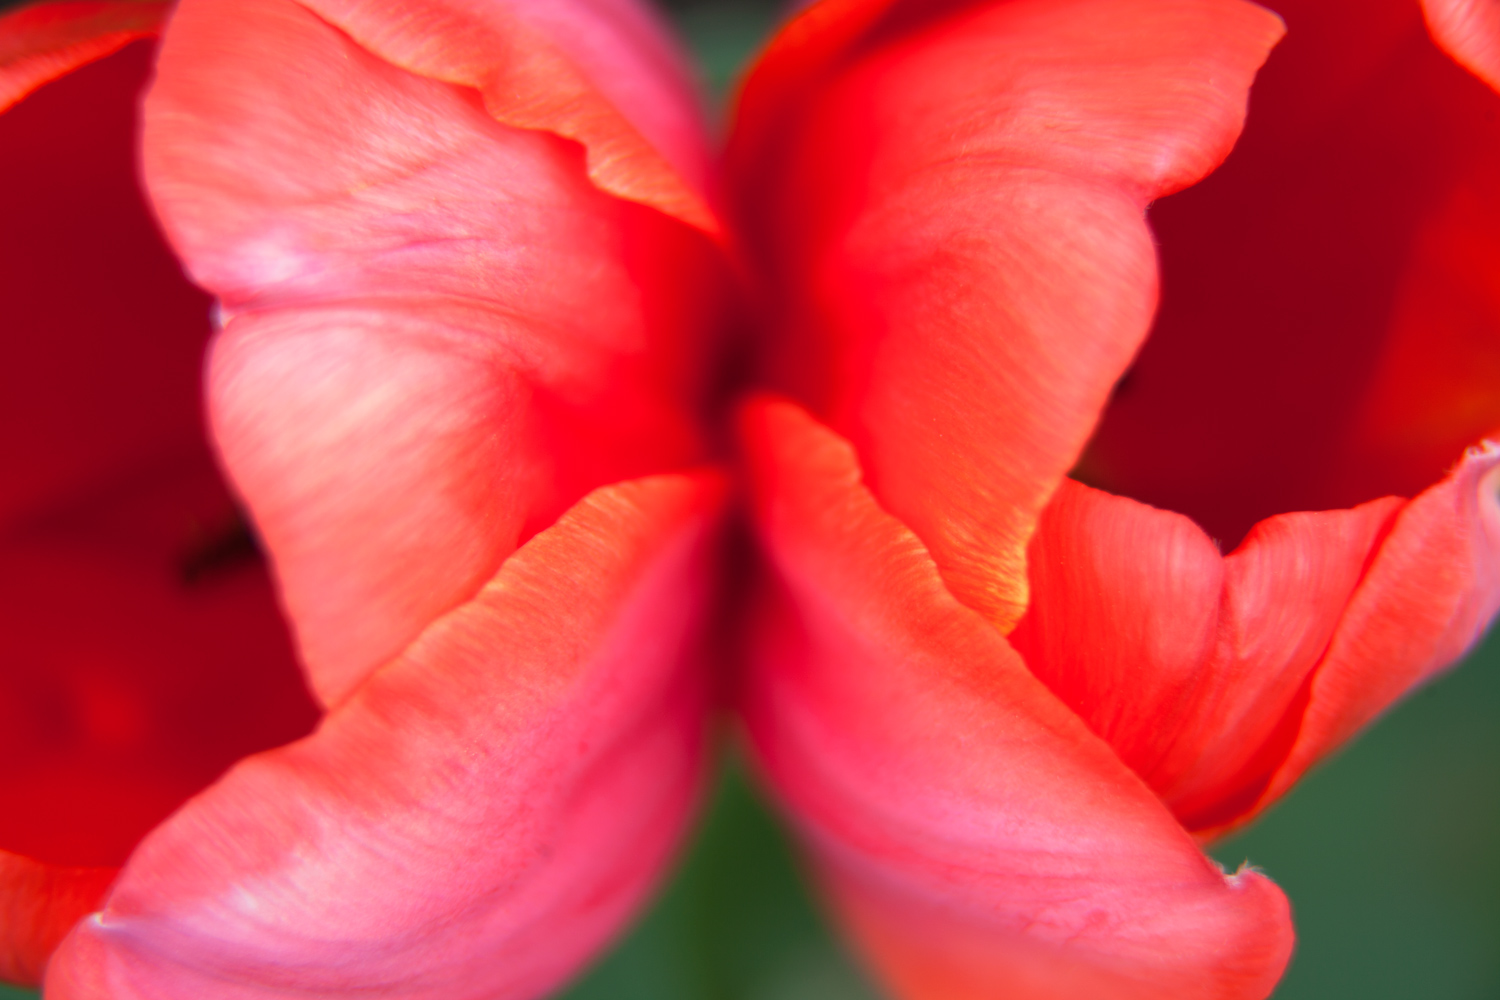 7 - 5 Tips for Photographing Flowers with Impact